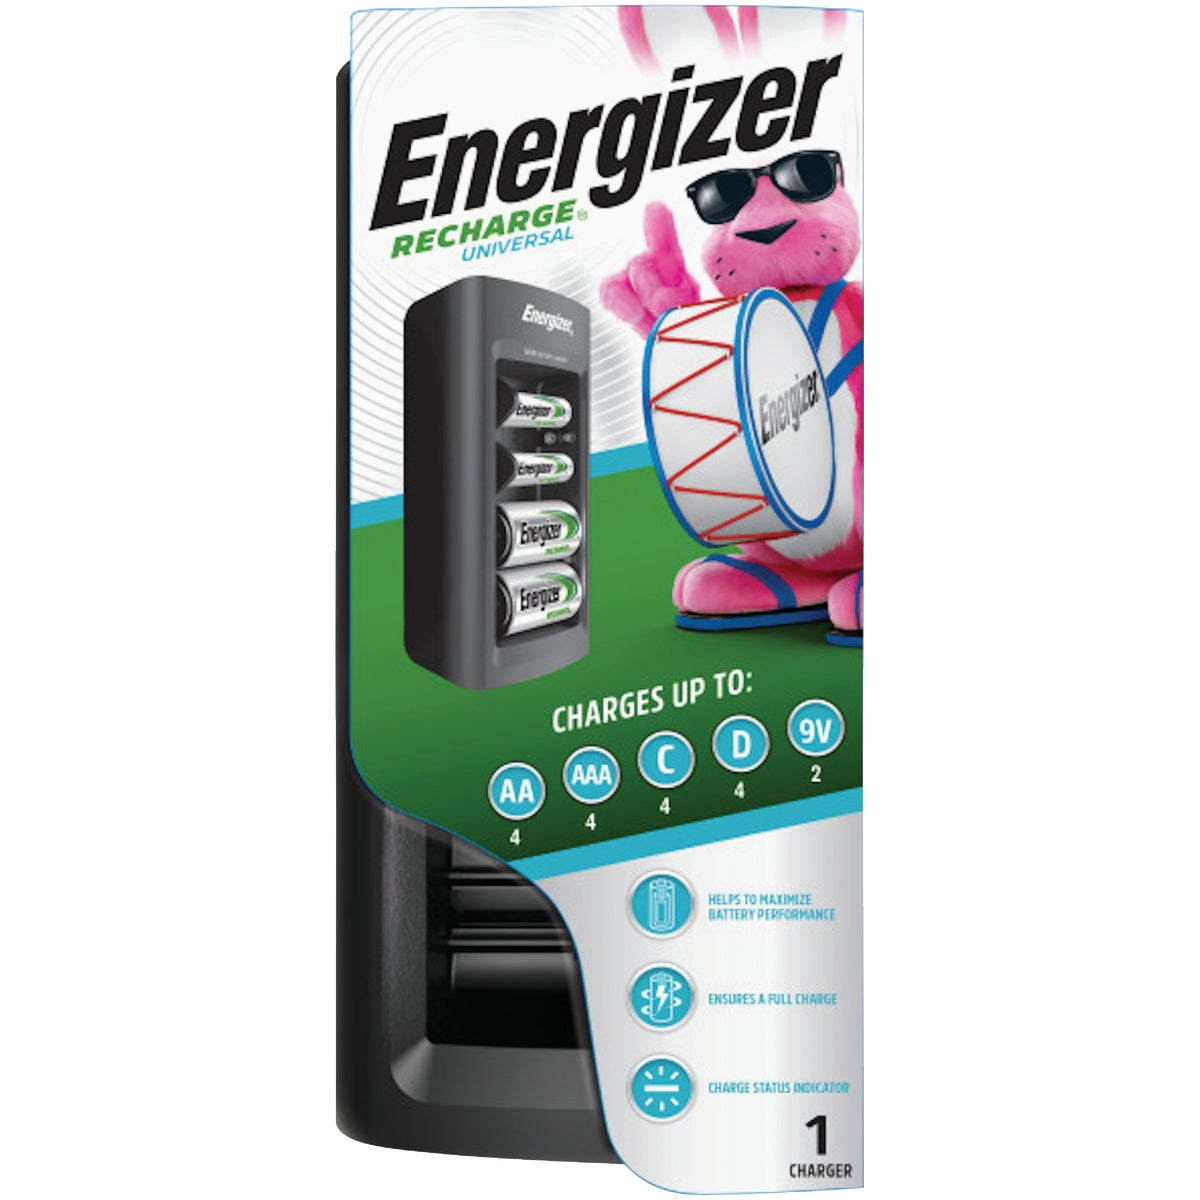 FAMILY BATTERY CHARGER - CHFC by Energizer